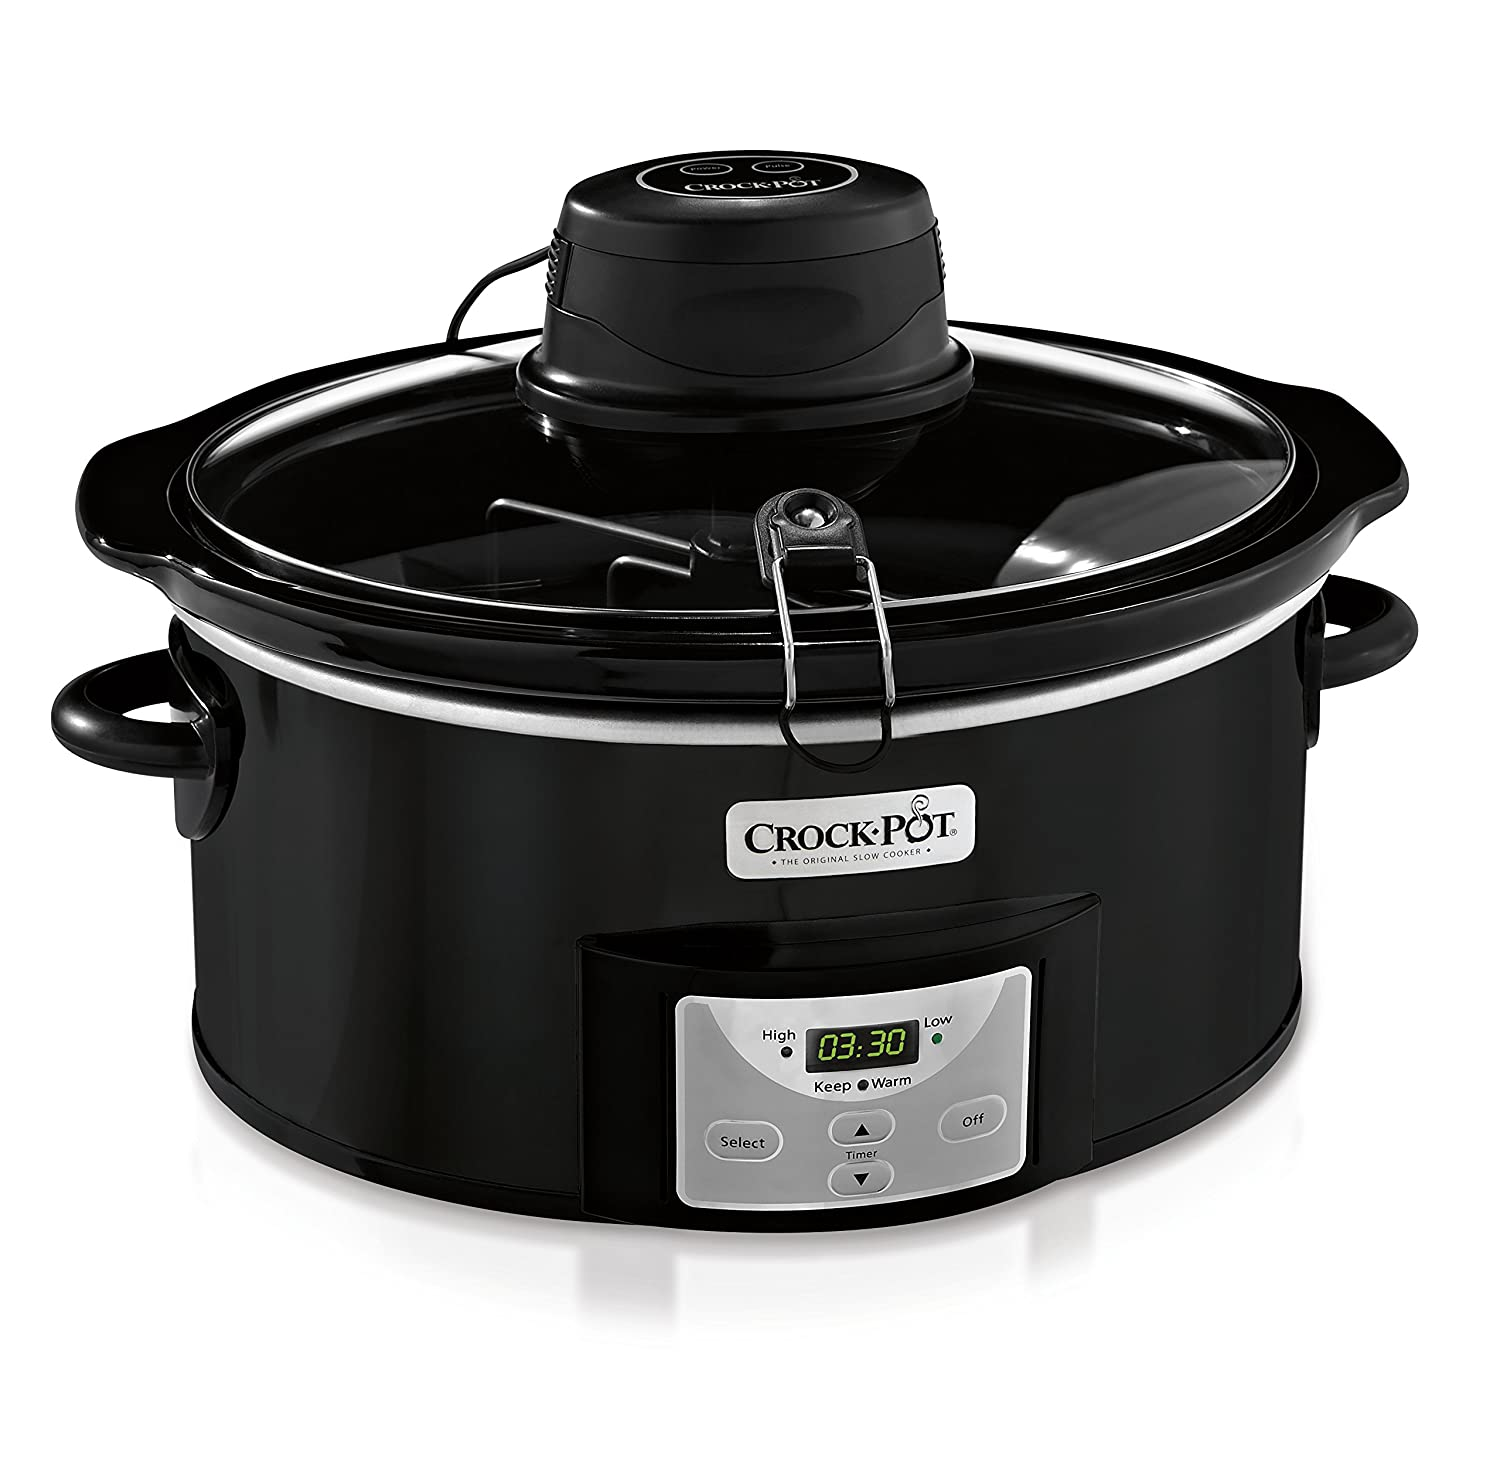 Crock-Pot SCCPVC600AS-B 6-Quart Digital Slow Cooker with iStir Stirring System, Black, 6 Qt